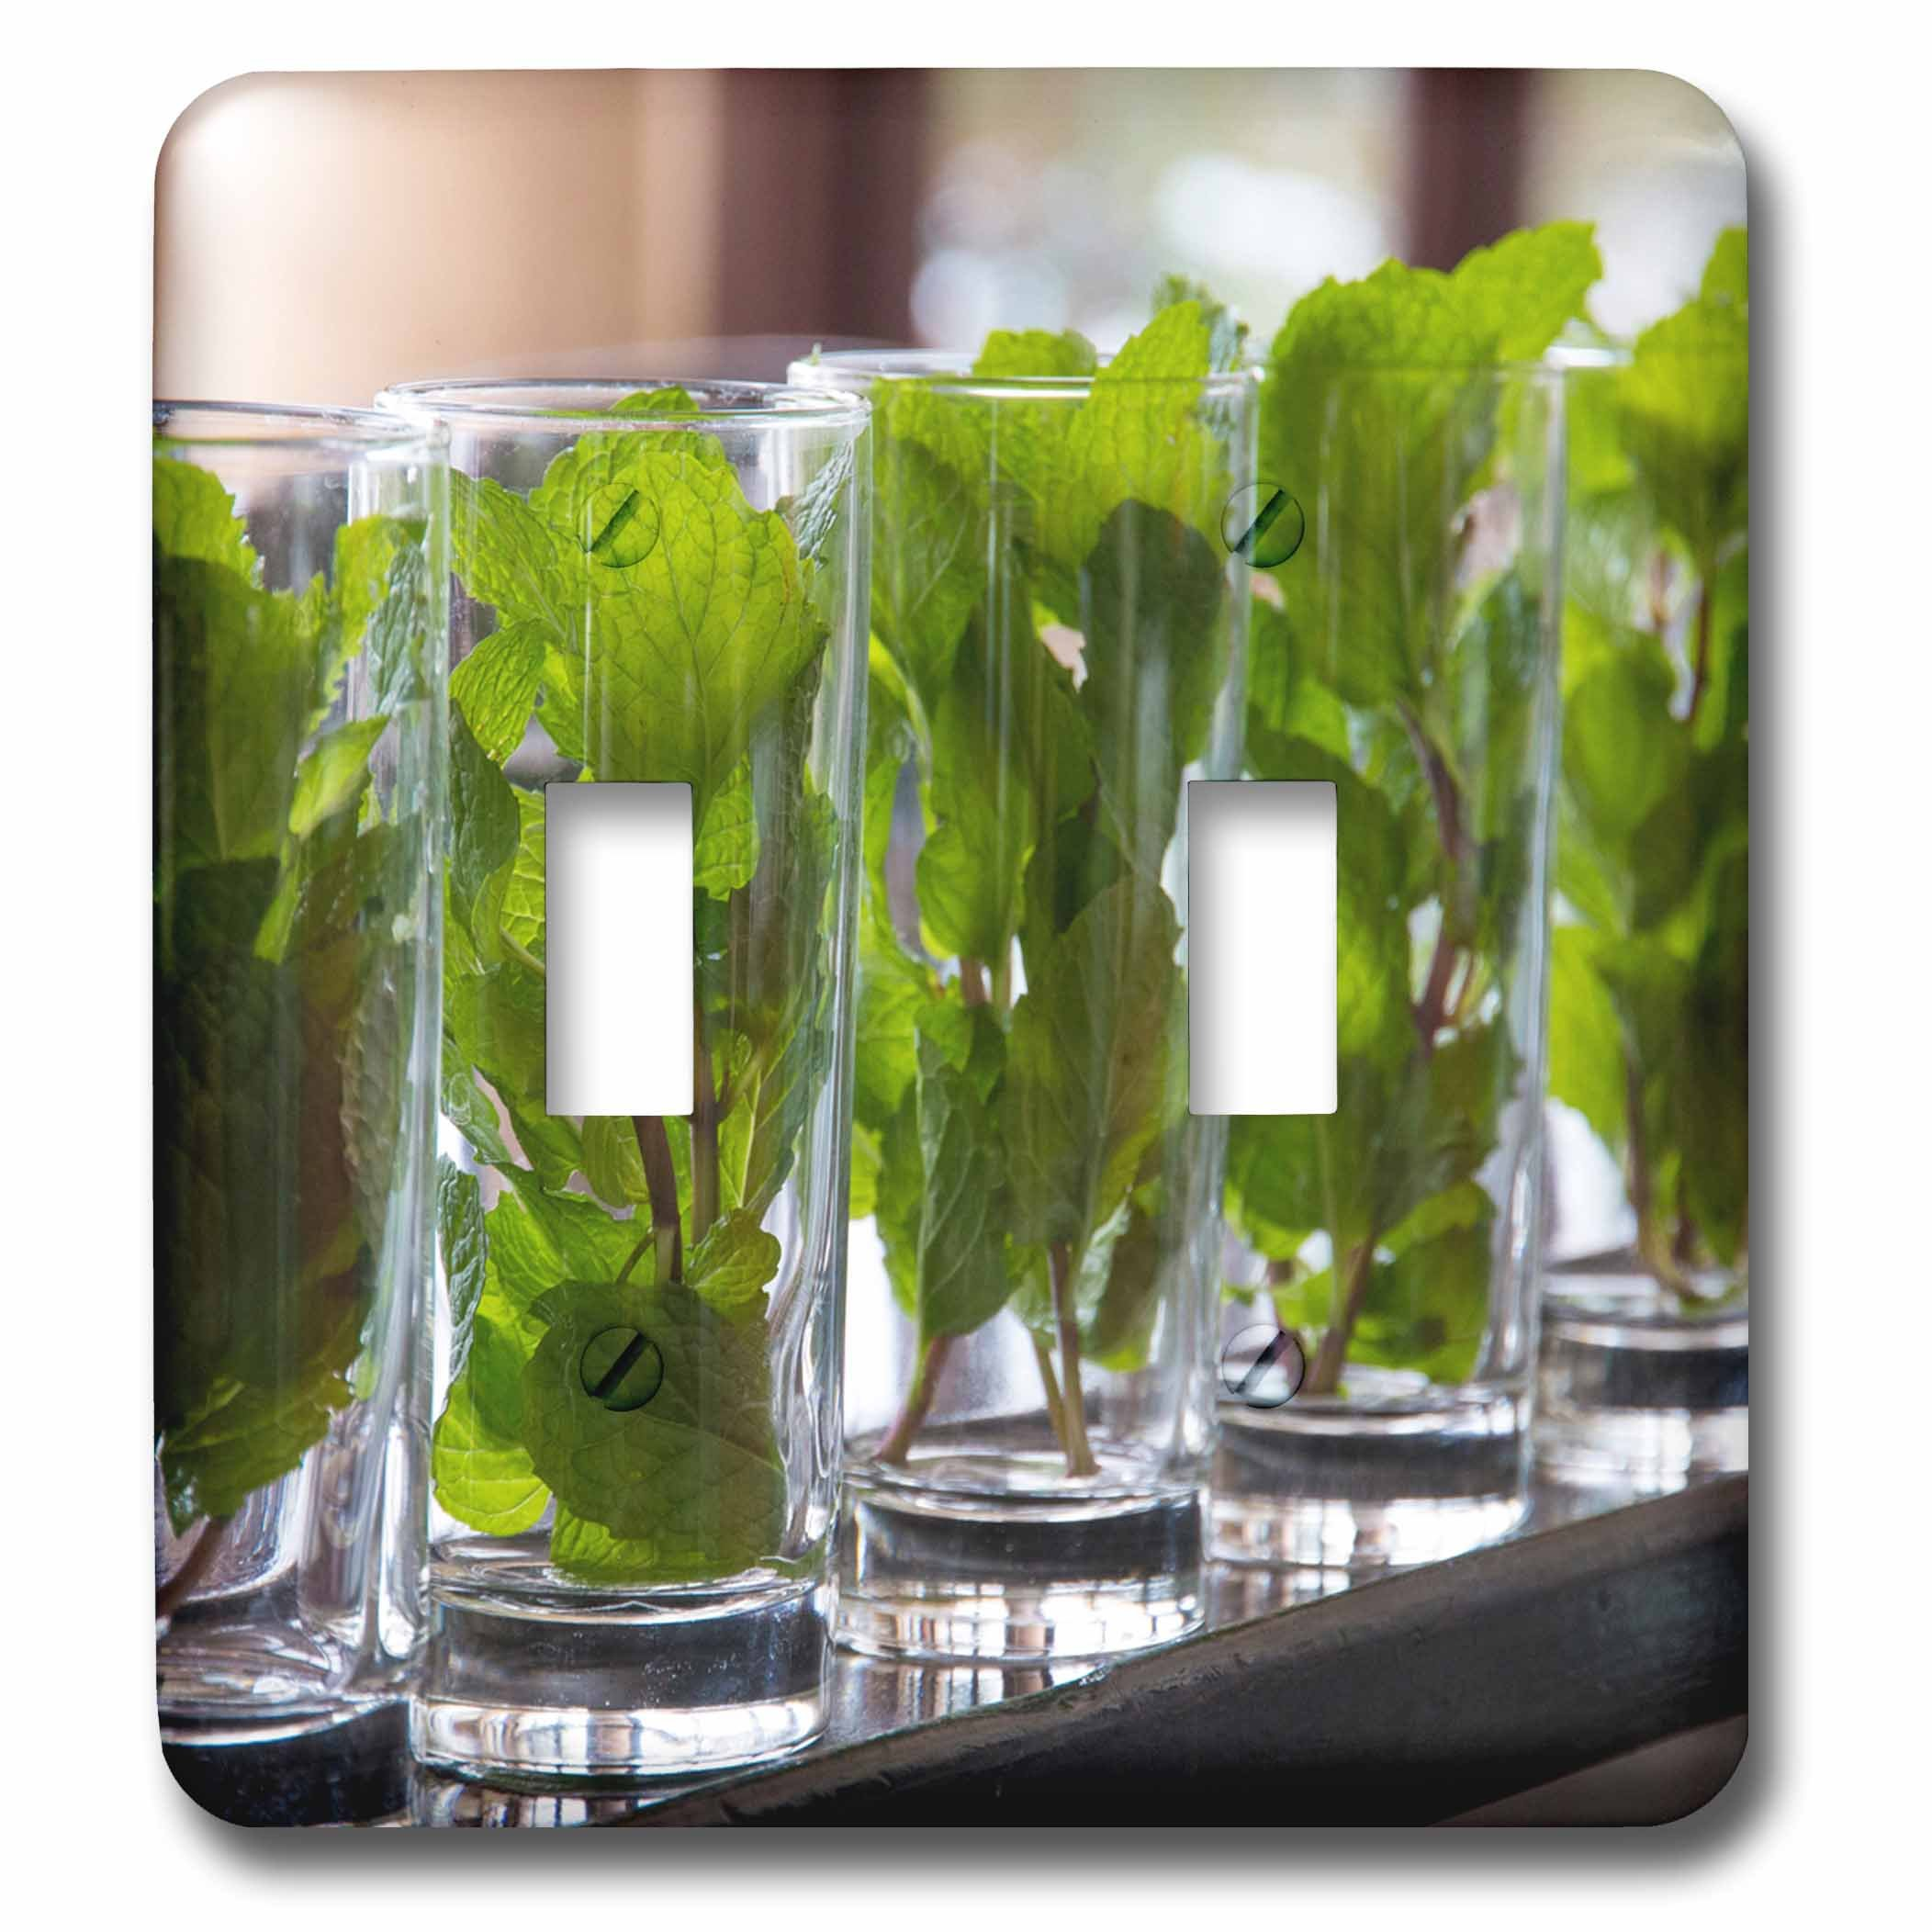 Danita Delimont - Cuba - Caribbean, Cuba, Hotel. Glass filled with mint to make mojitos. - Light Switch Covers - double toggle switch (lsp_226539_2)